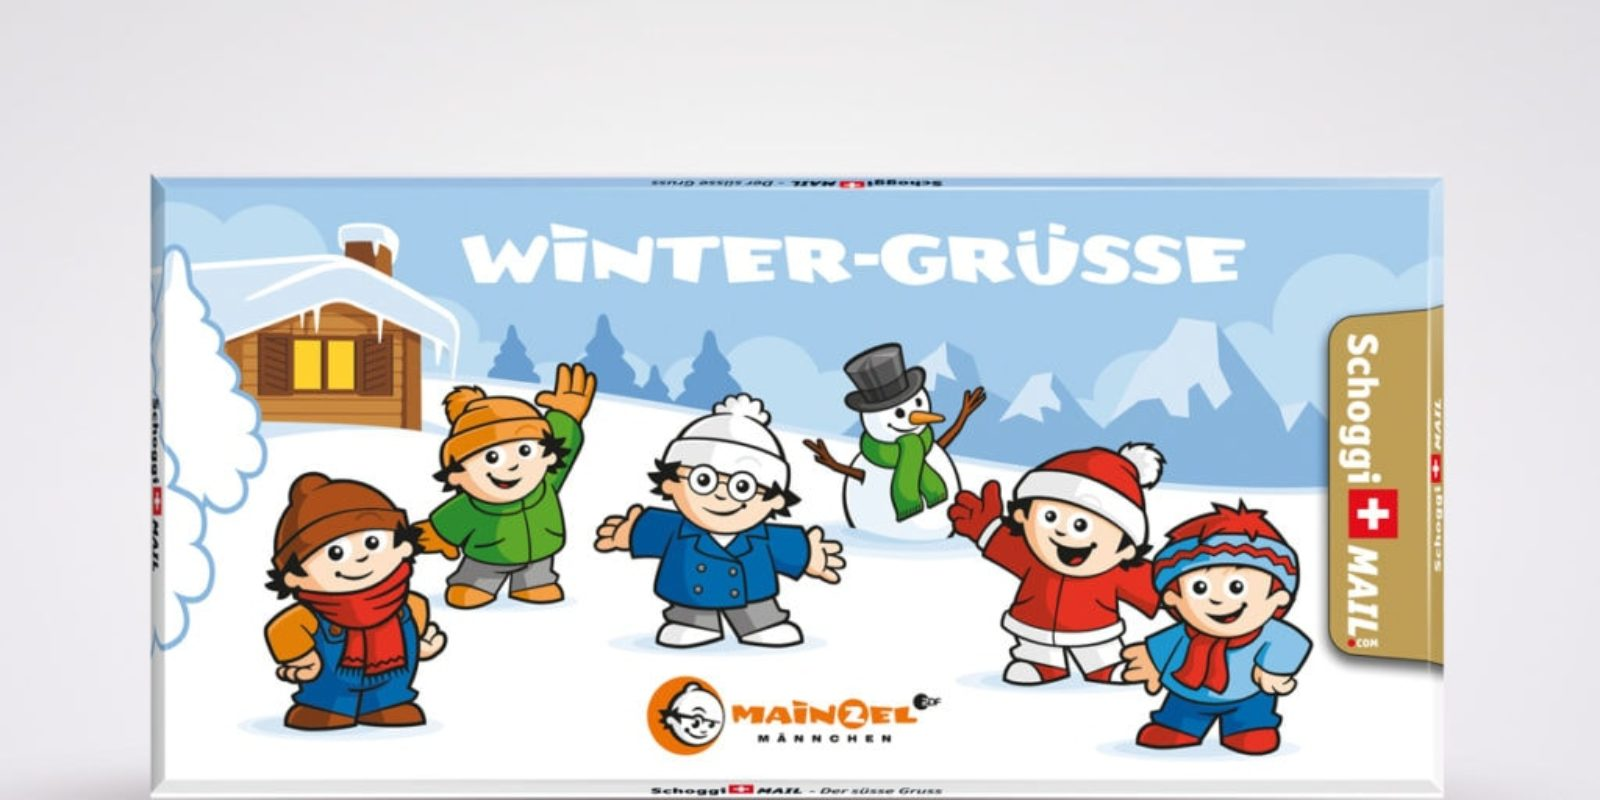 1137837-MM-Wintergruesse_front